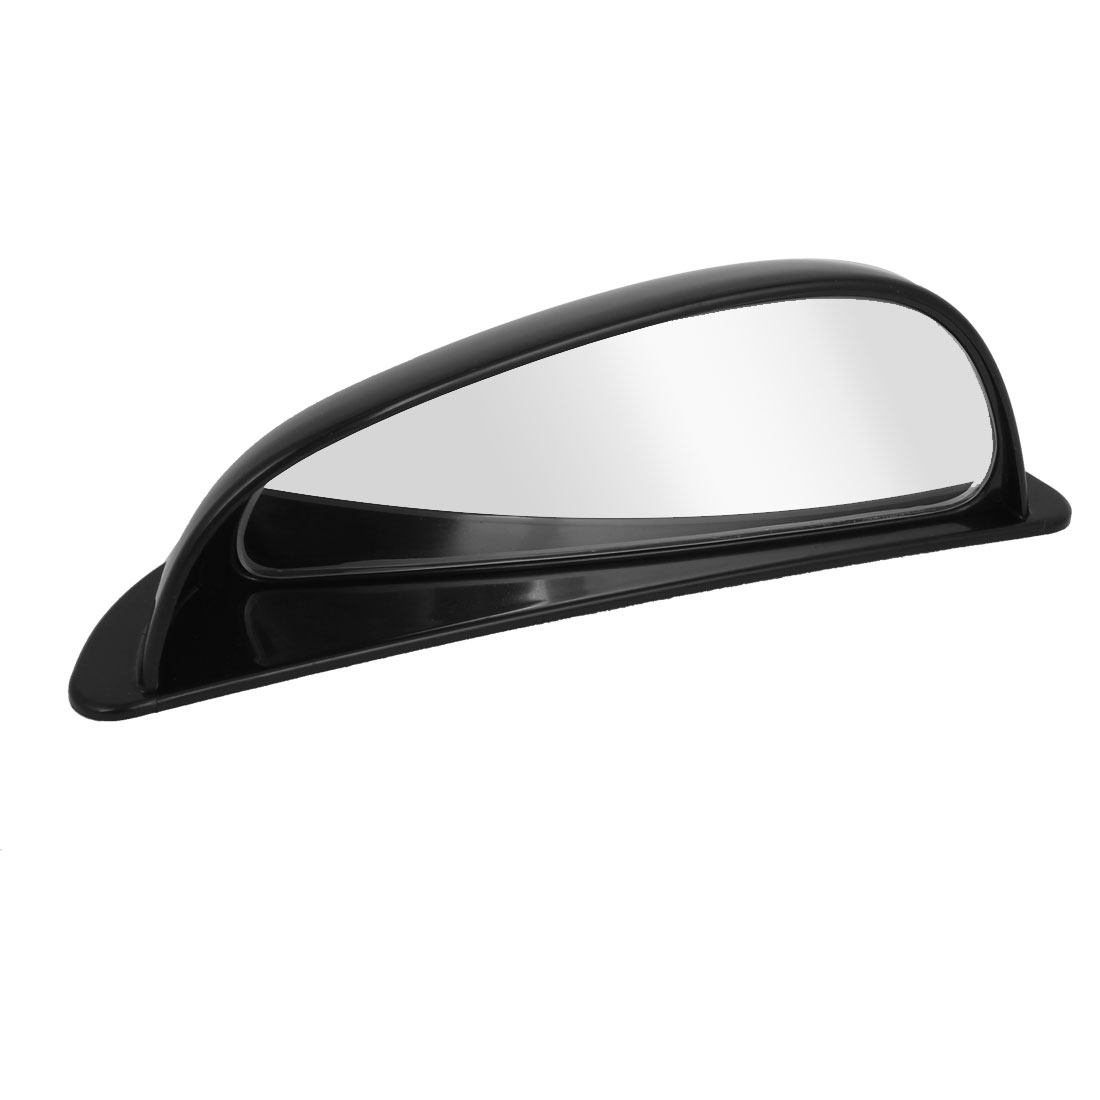 Black Plastic Shell Adhesive Back Wide Angle Right Rearview Mirror for Car